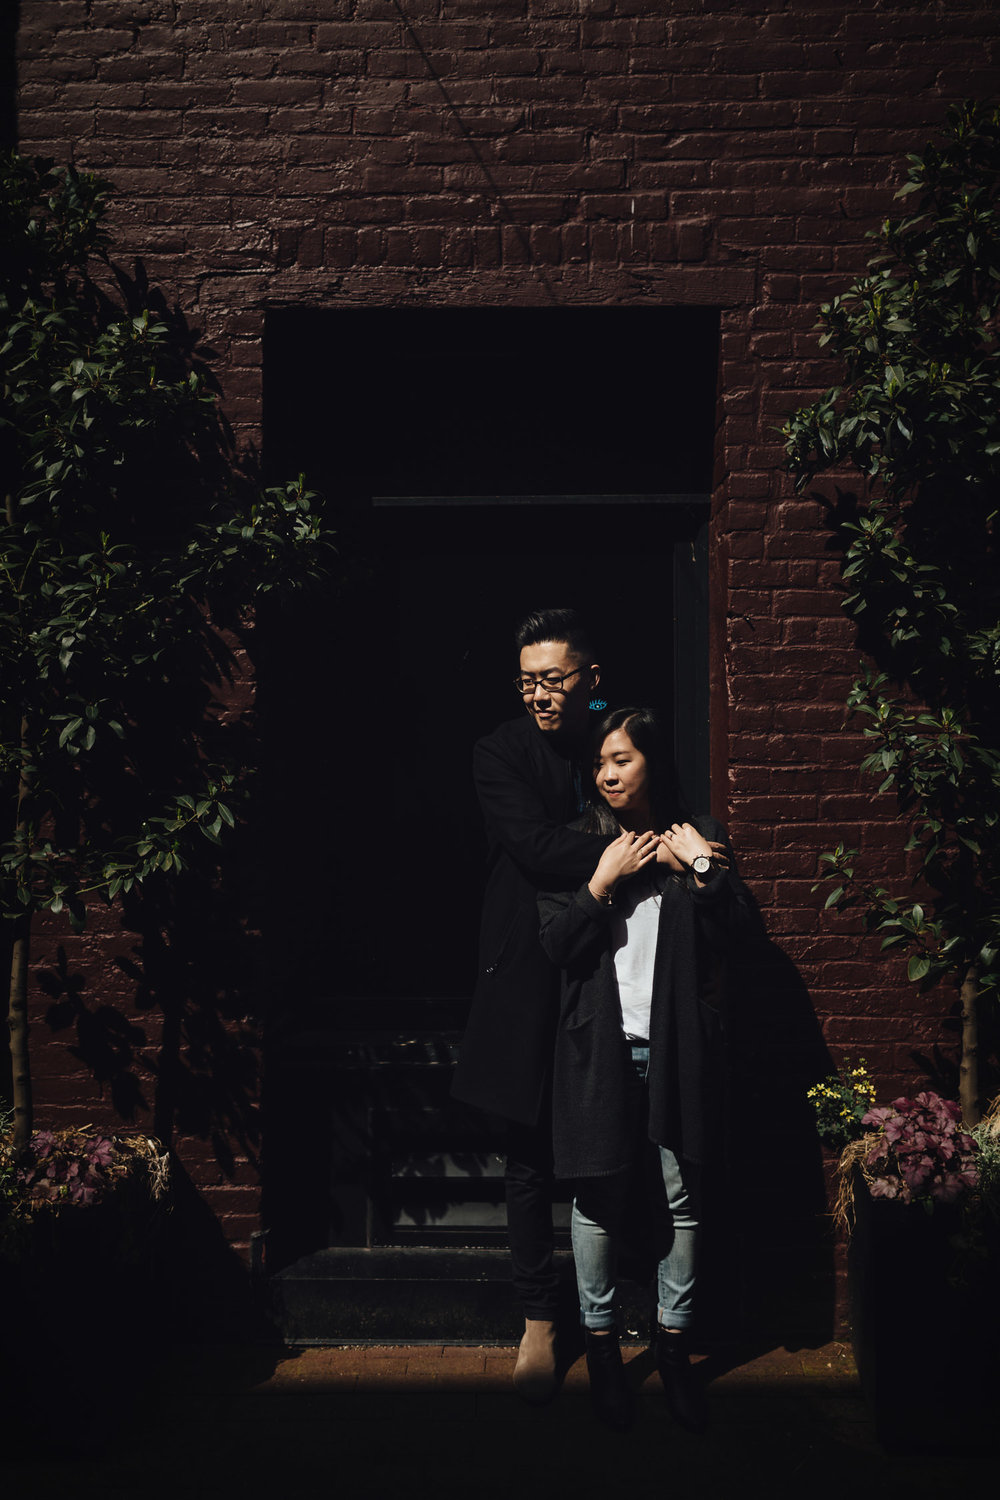 gastown blood alley engagement photography harsh light vsco vancouver bc